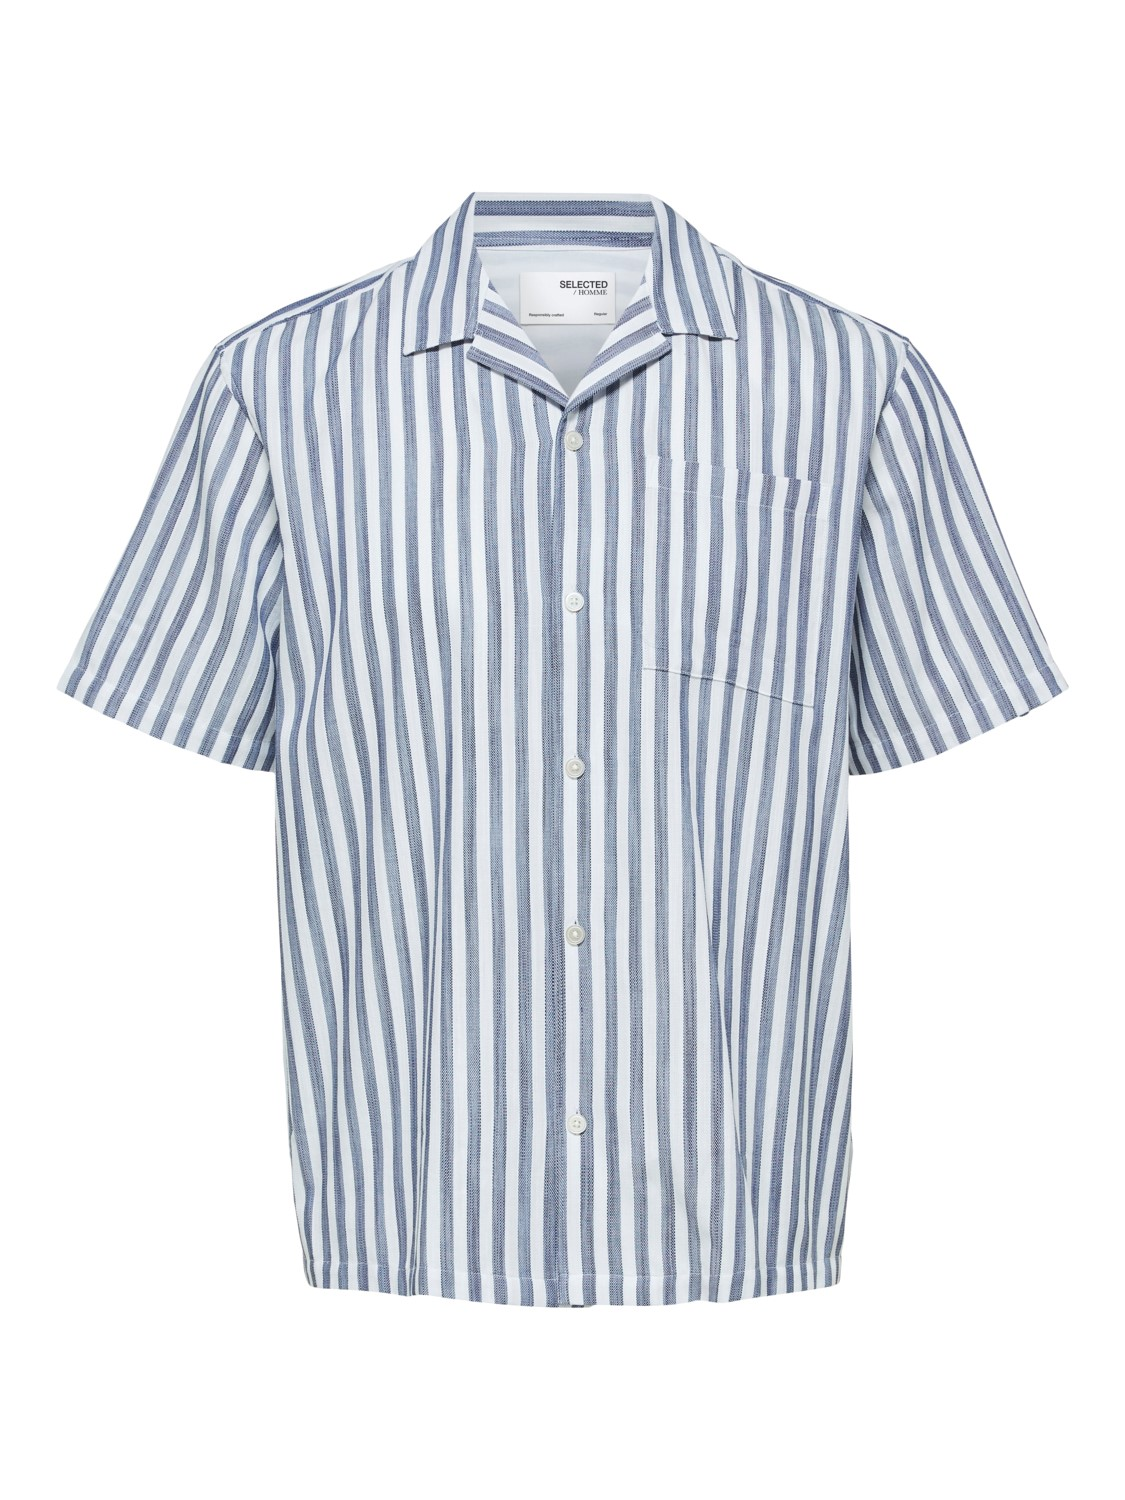 Selected Skjorte - SLHRELAXWADE SHIRT STRIPES | Gate36 Hobro